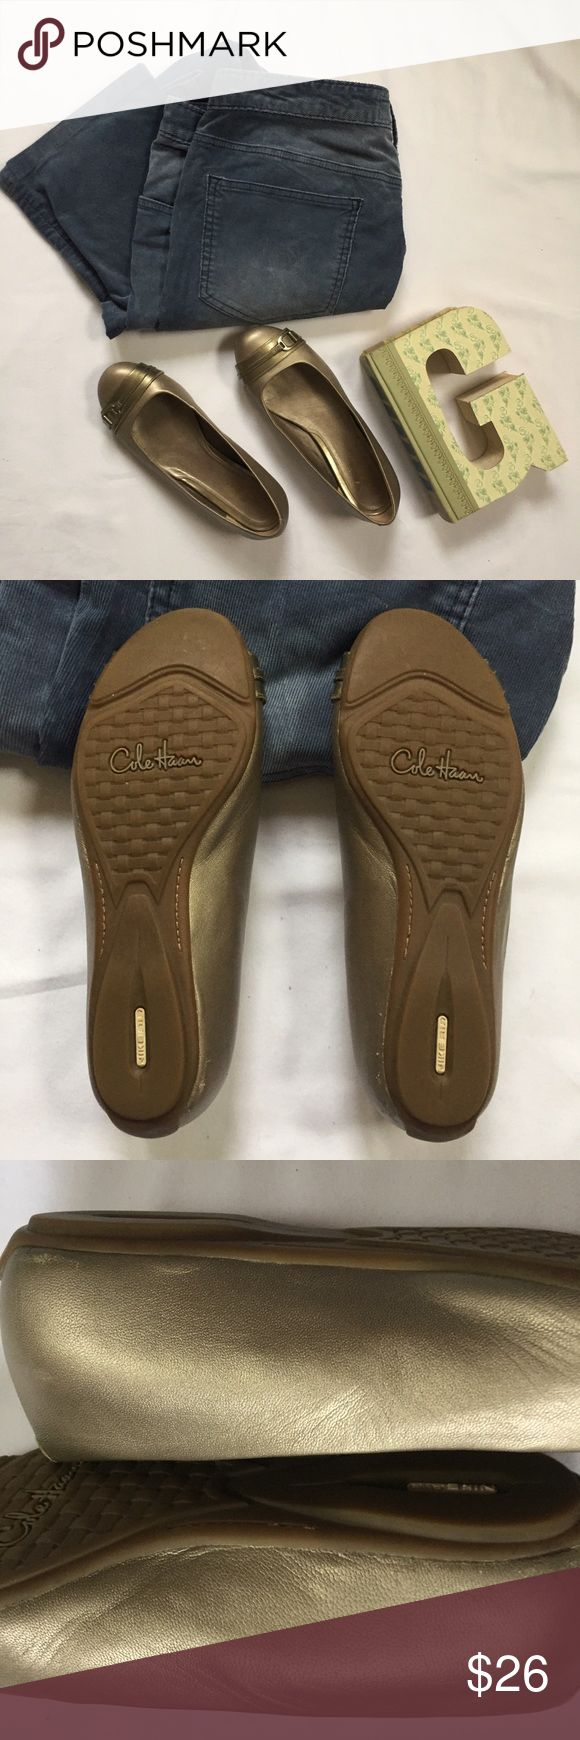 Cole Haan Nike Air Sole Gold Ballet Flats size 7 Buckles on vamp  Excellent, pre-owned condition, soles untouched  Tiny amount of wear along sides right above sole (see pic) Cole Haan Shoes Flats & Loafers